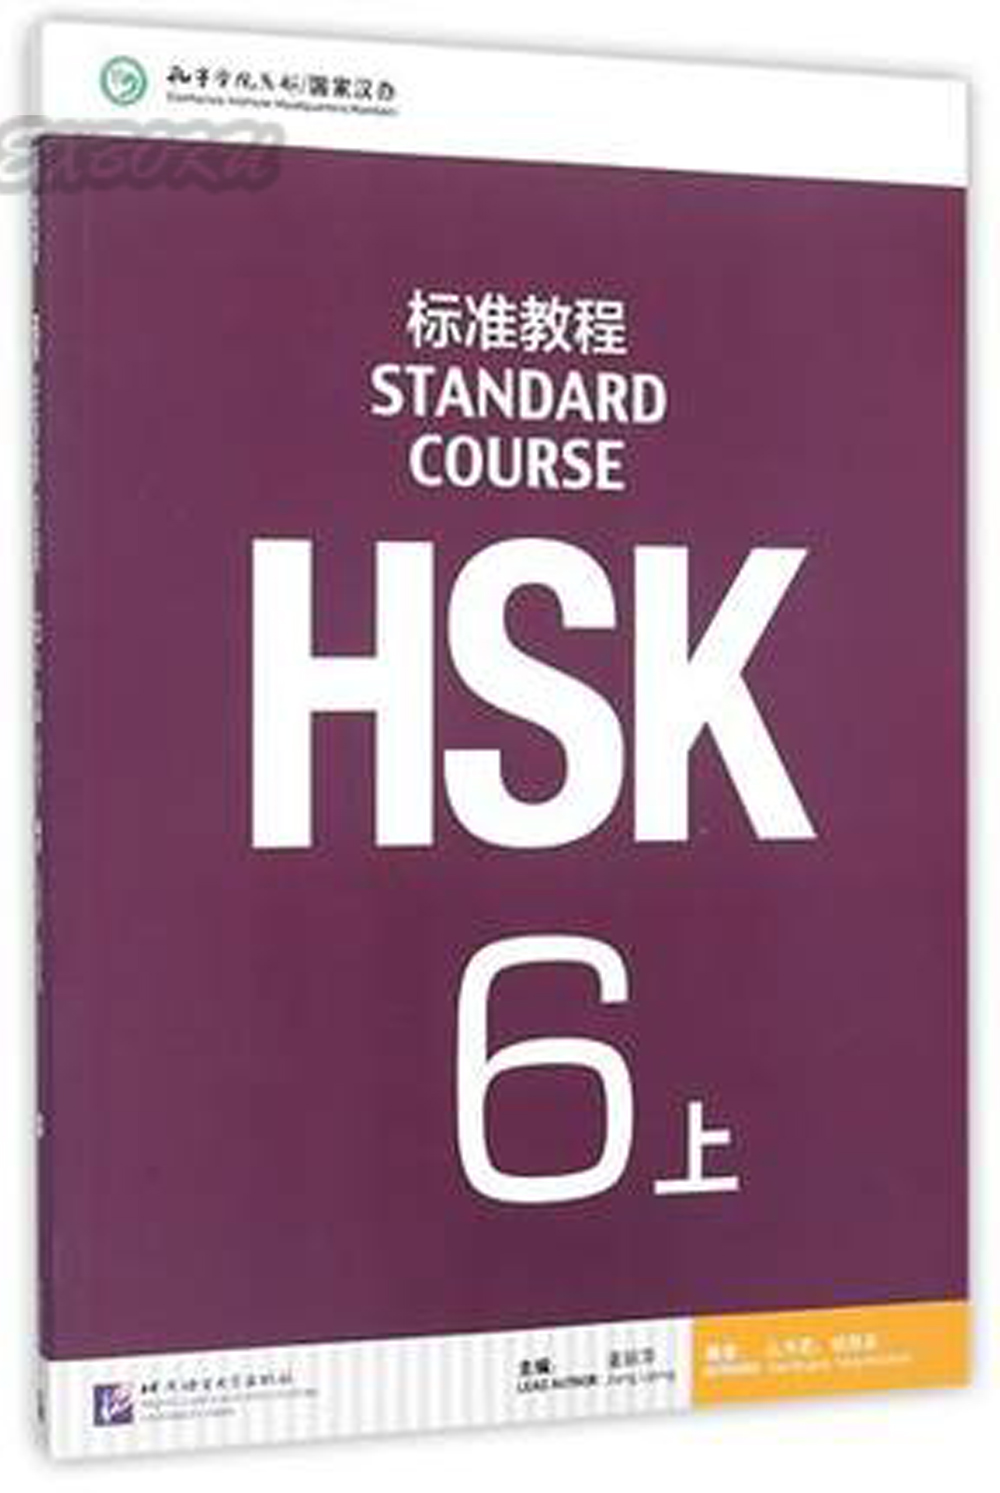 HSK Standard Course 6 - Chinese Mandarin HSK standard tutorial students Textbook (with mp 3 CD ) 2017 new arrivel hsk standard course 3 chinese level examination recommended books learn chinese mandarin textbook